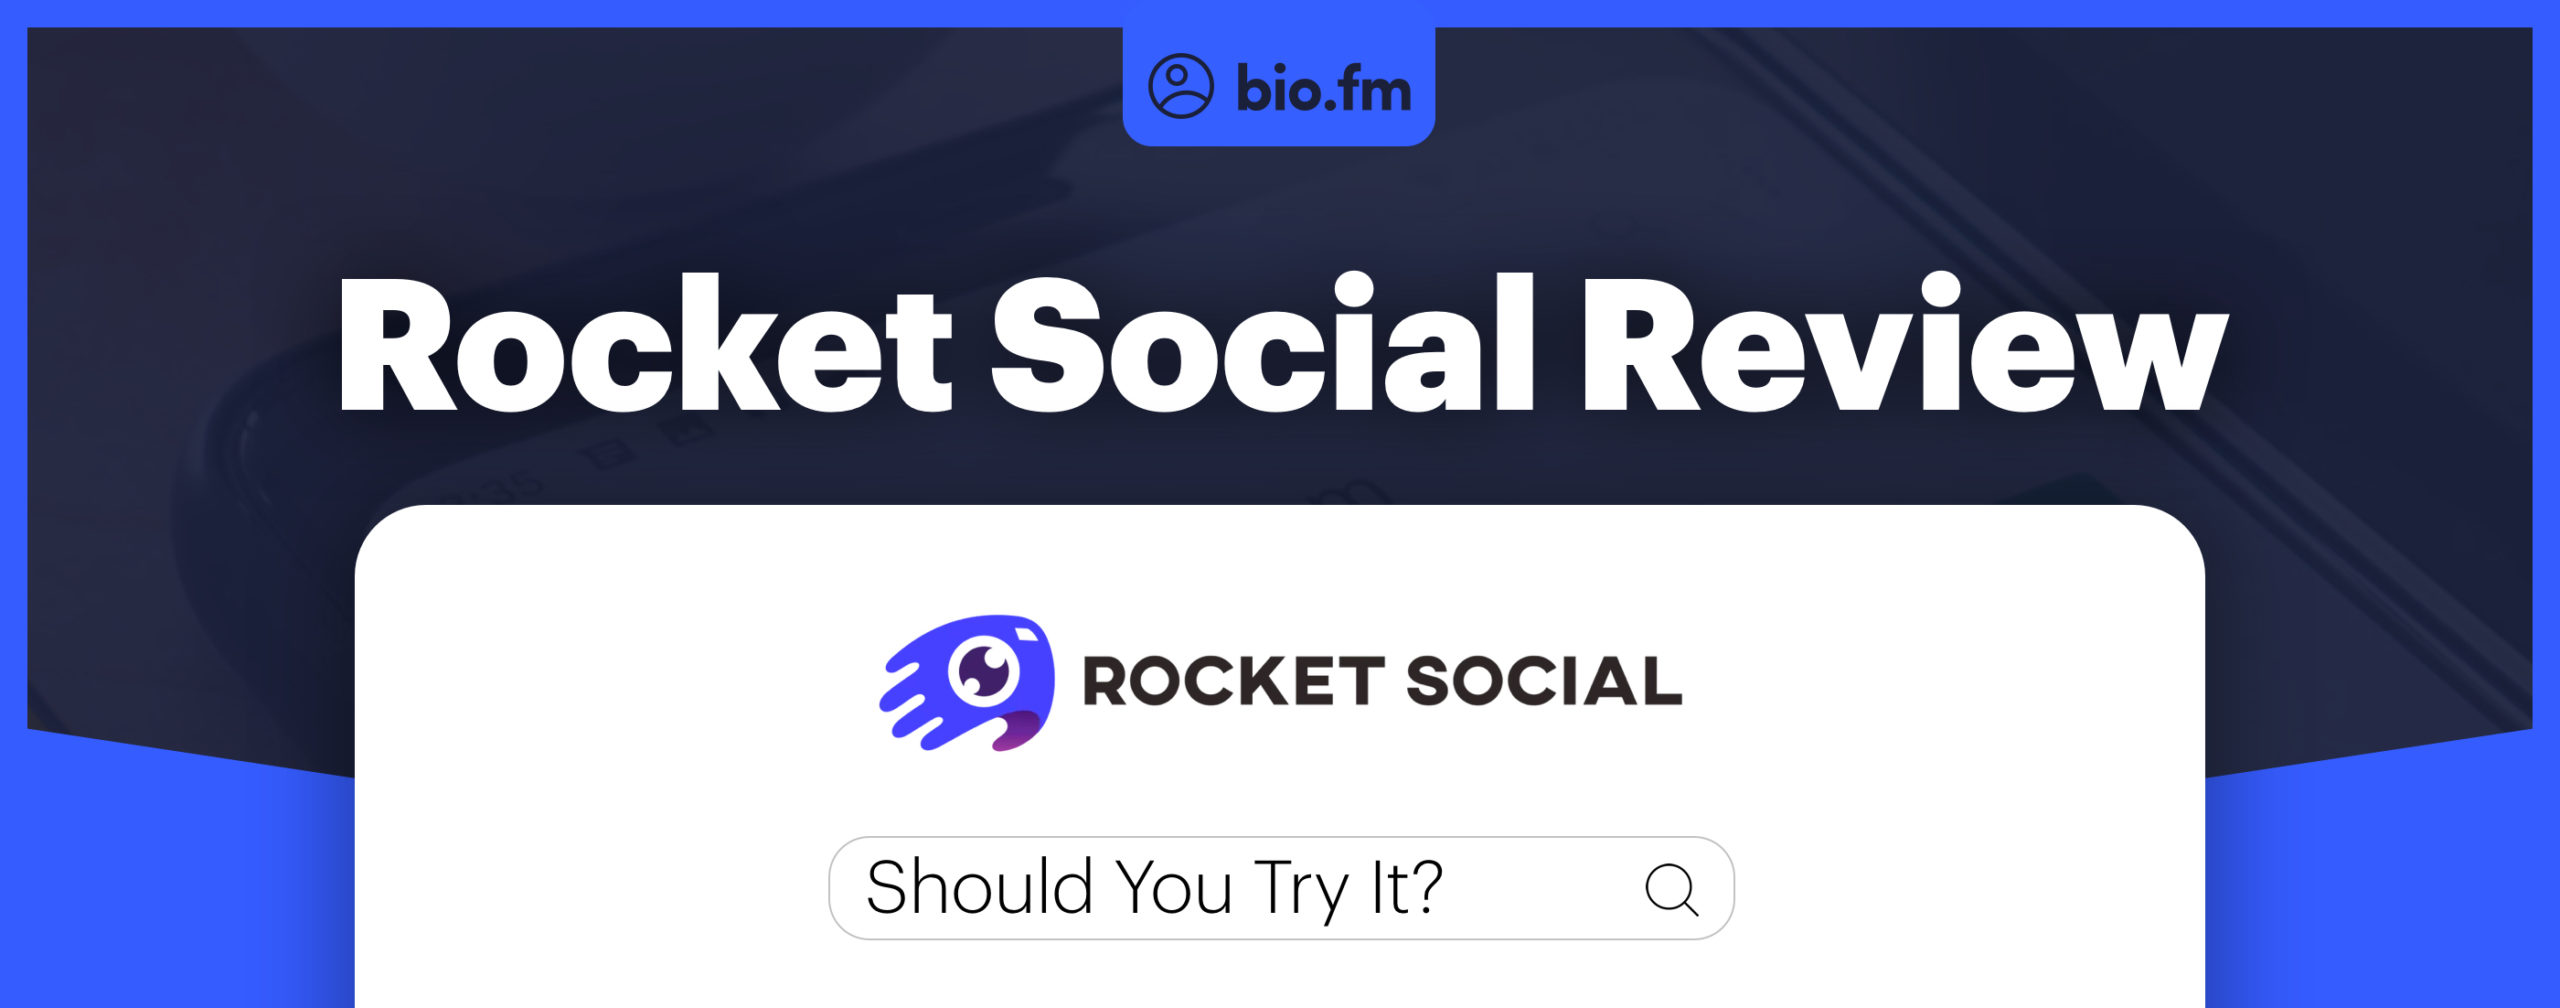 rocketsocial review featured image